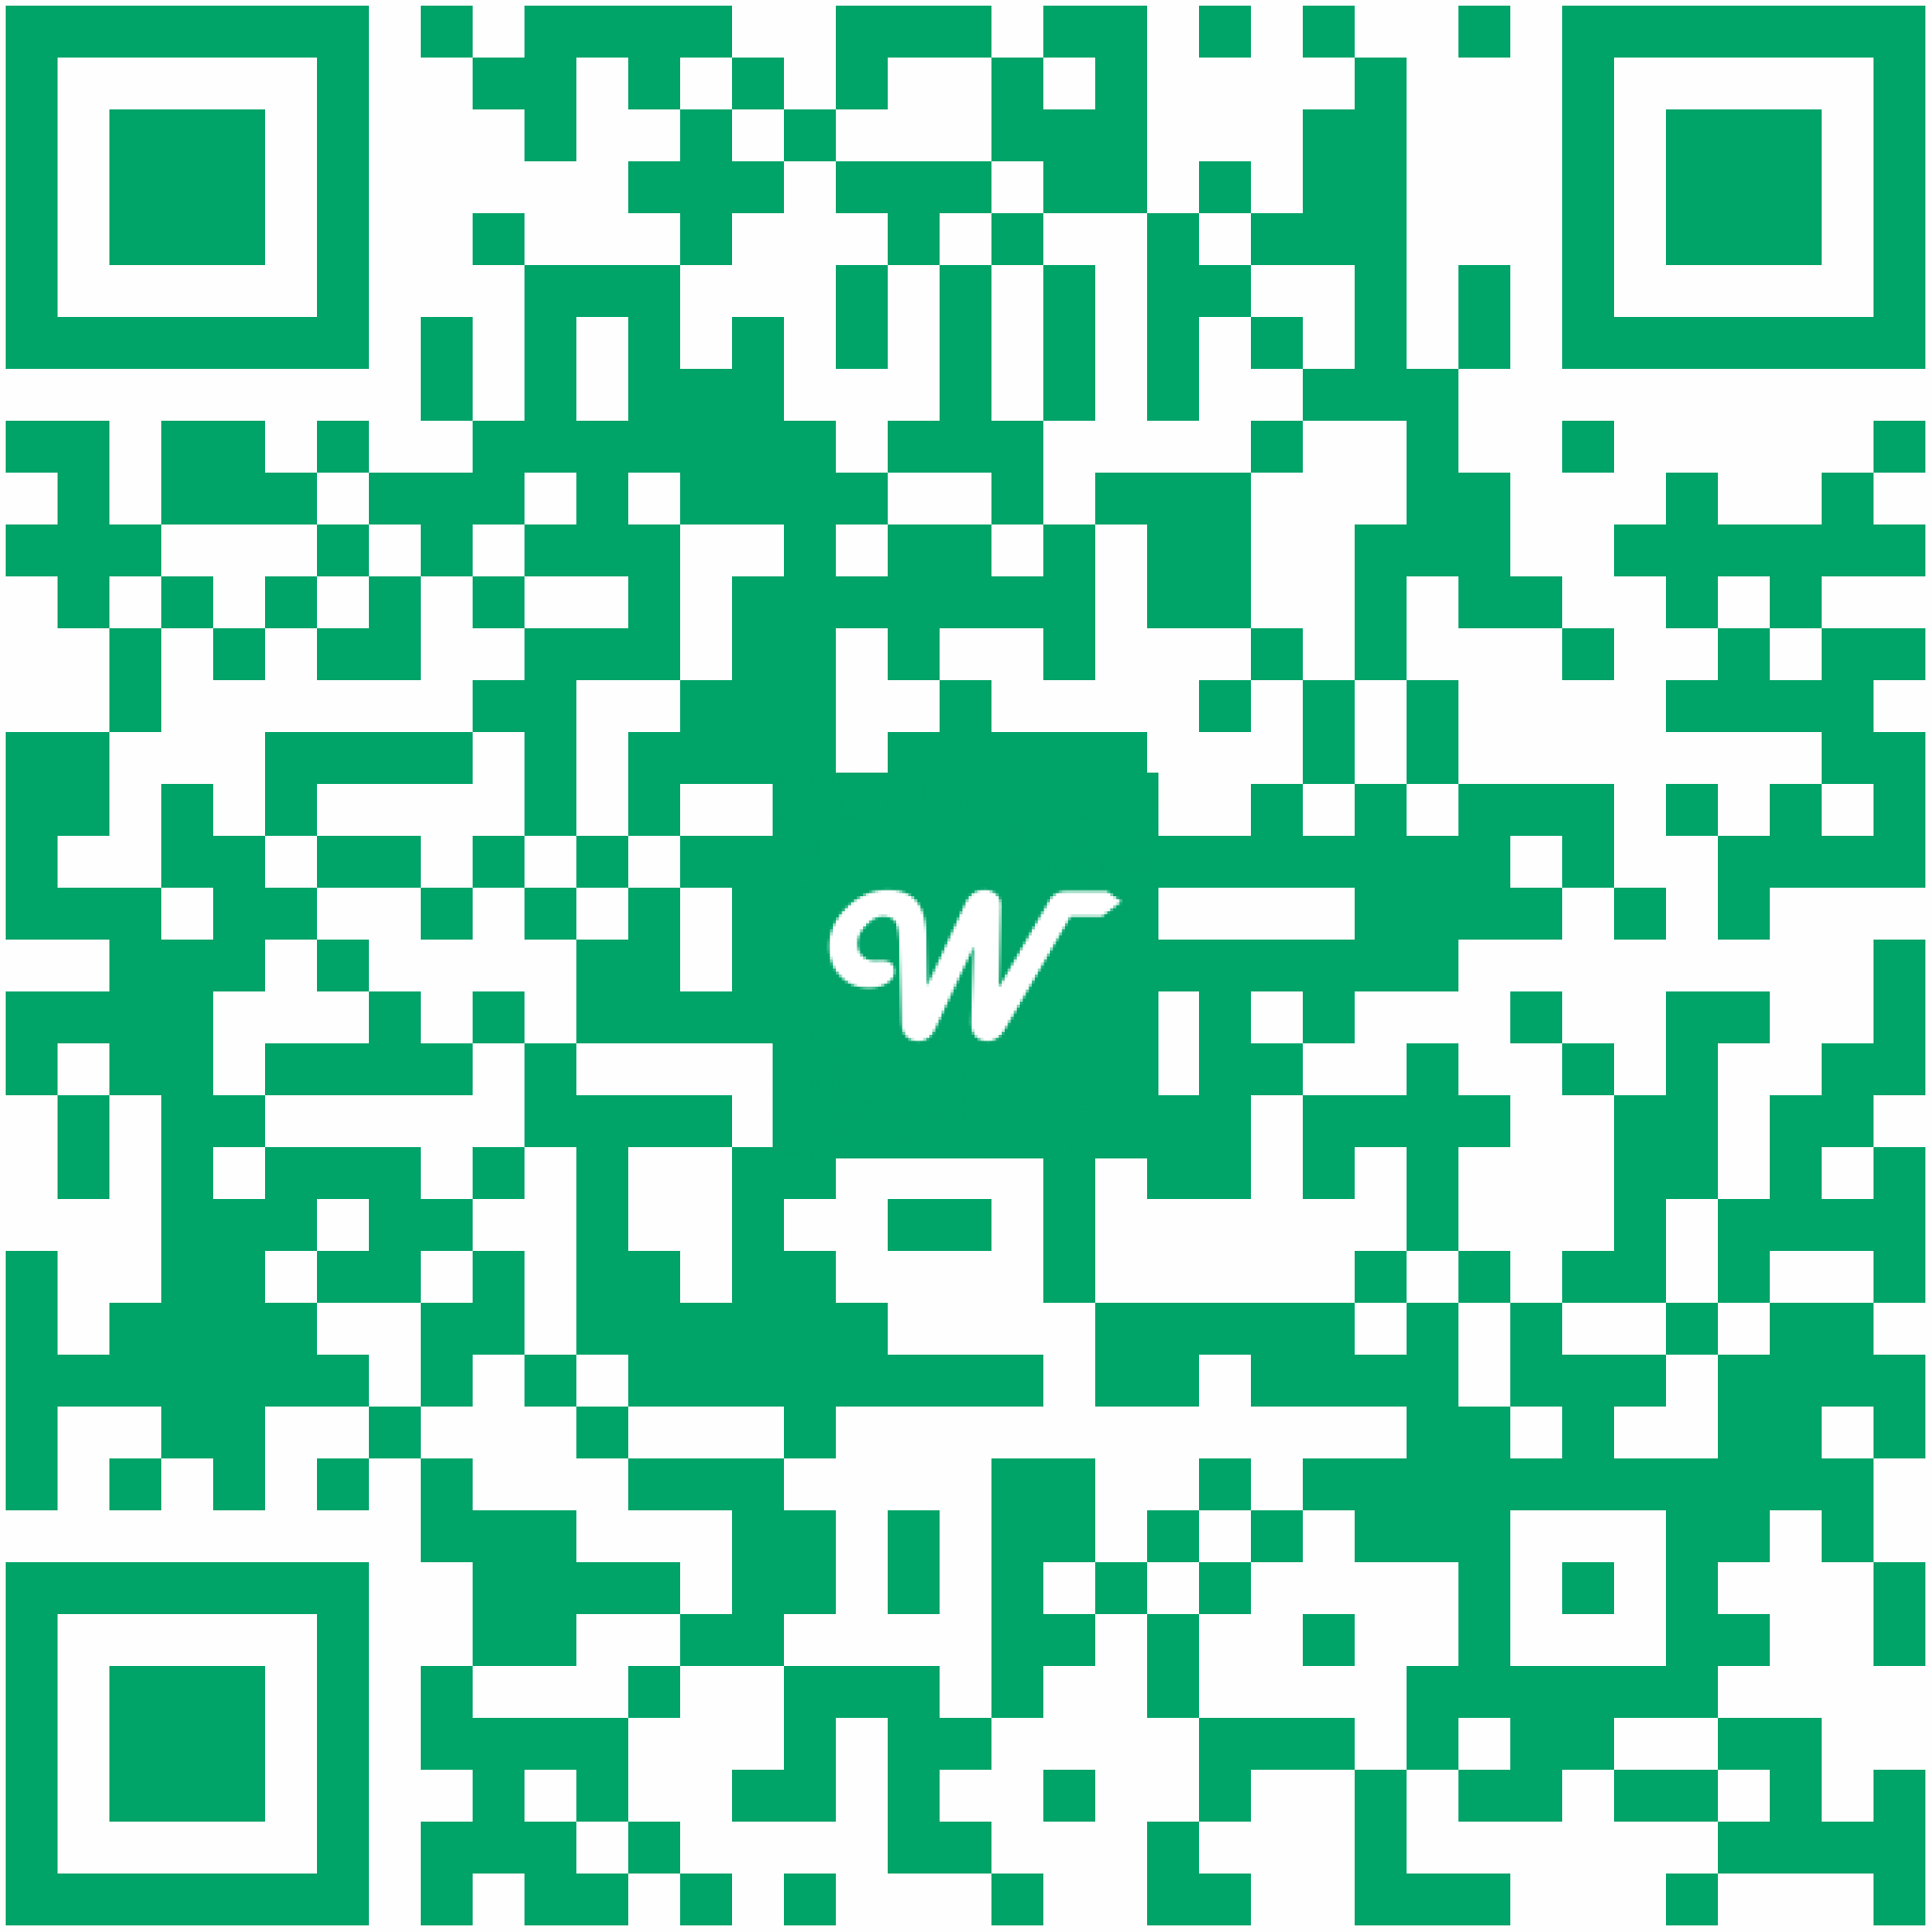 Printable QR code for Synergy Alliance Consultants (M) Sdn Bhd